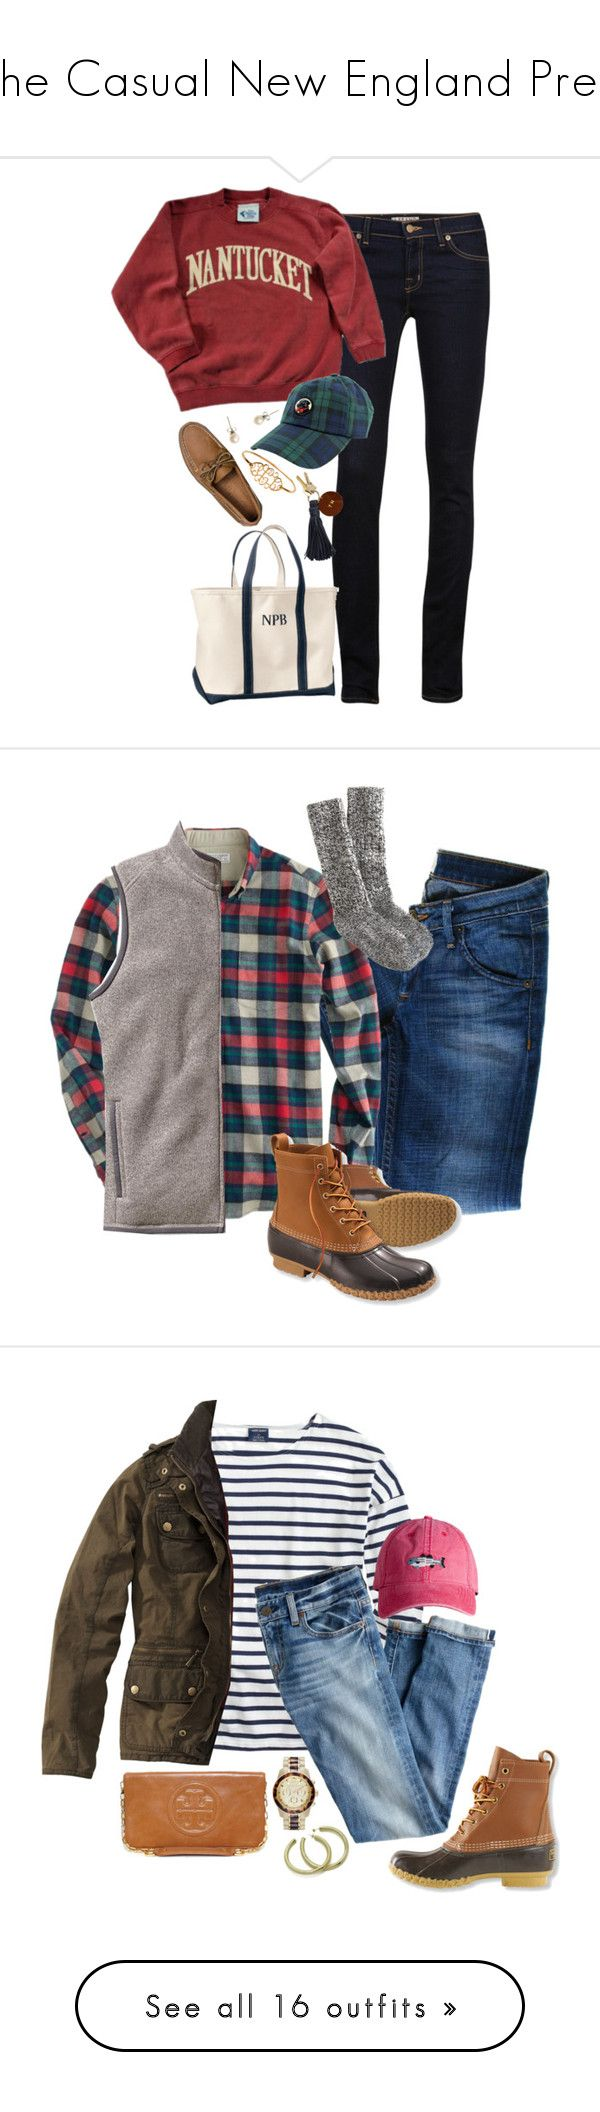 """The Casual New England Prep"" by preppy-katie ❤ liked on Polyvore featuring J Brand, Southern Proper, J.Crew, L.L.Bean, Sperry, Hudson Jeans, Patagonia, Saint James, Barbour and Sheila Fajl"